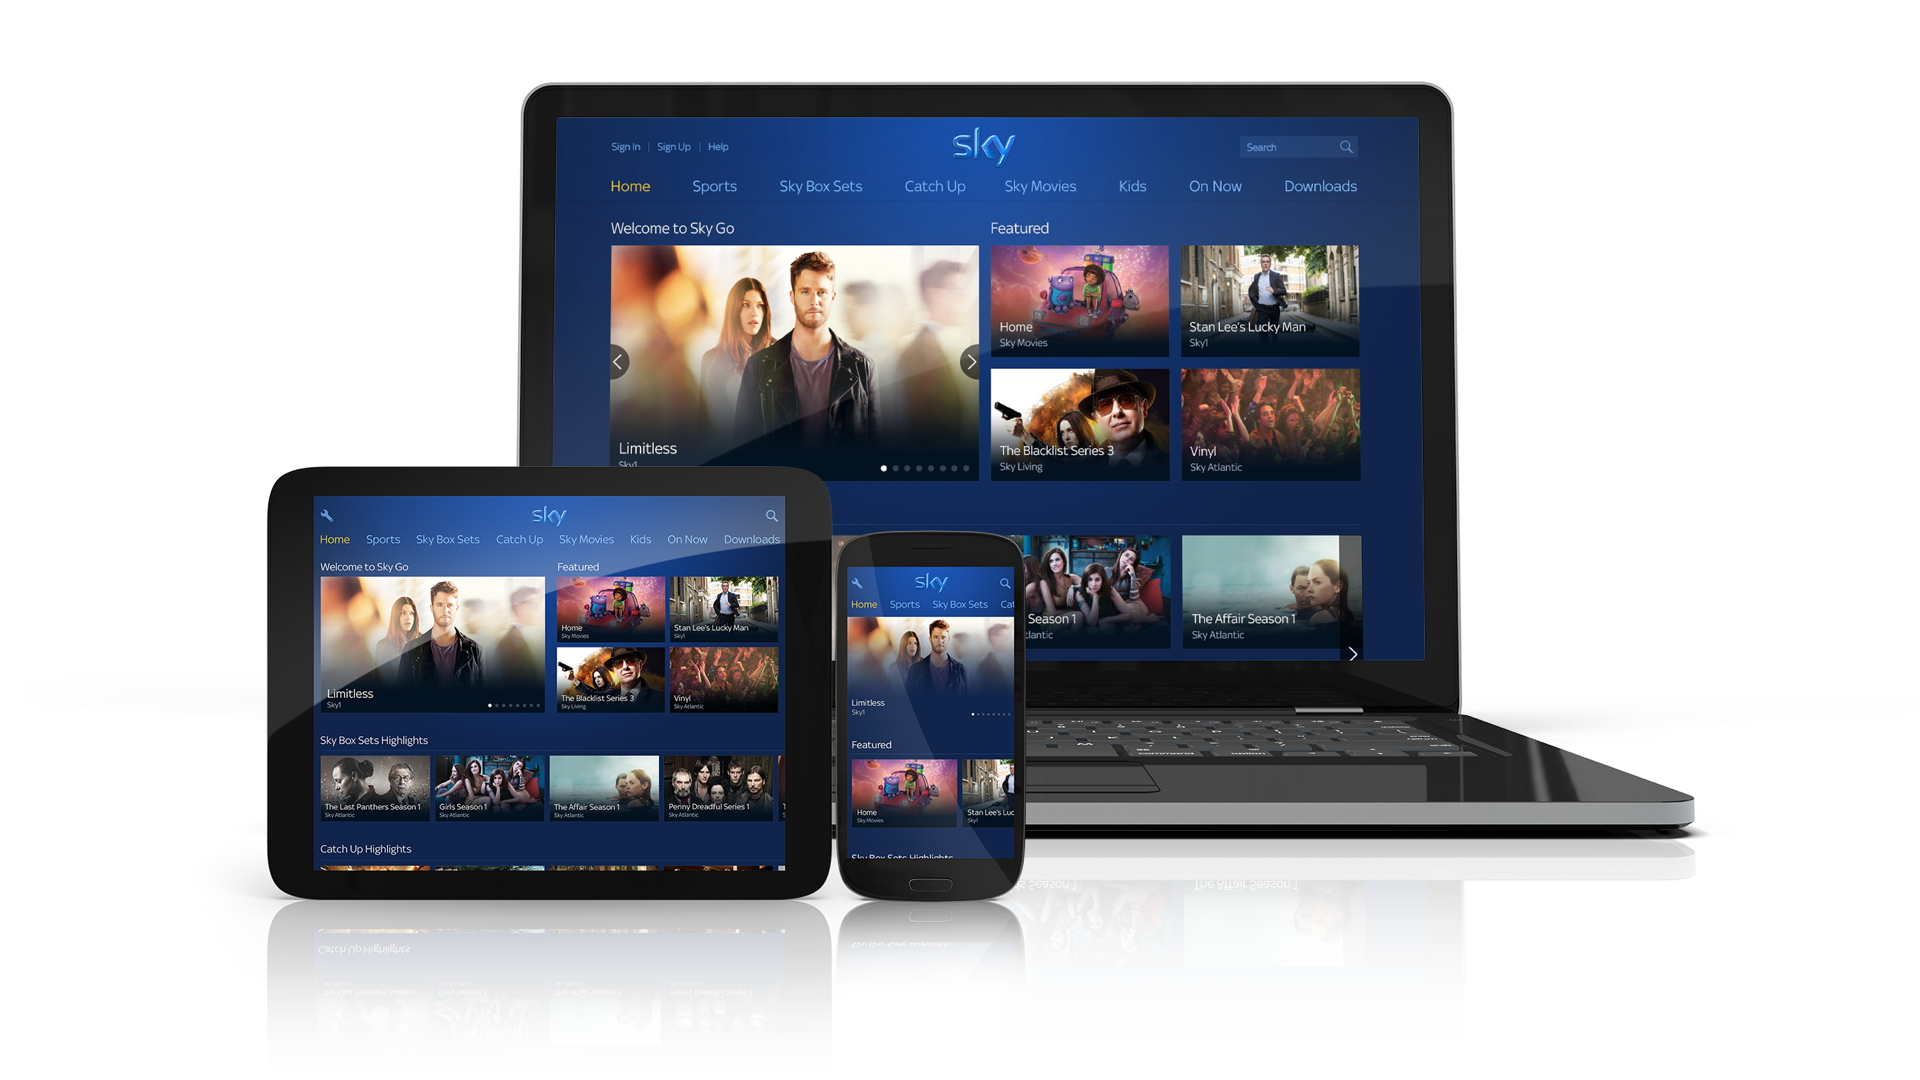 Sky Go gets a new design, but now we wait for new features | TechRadar